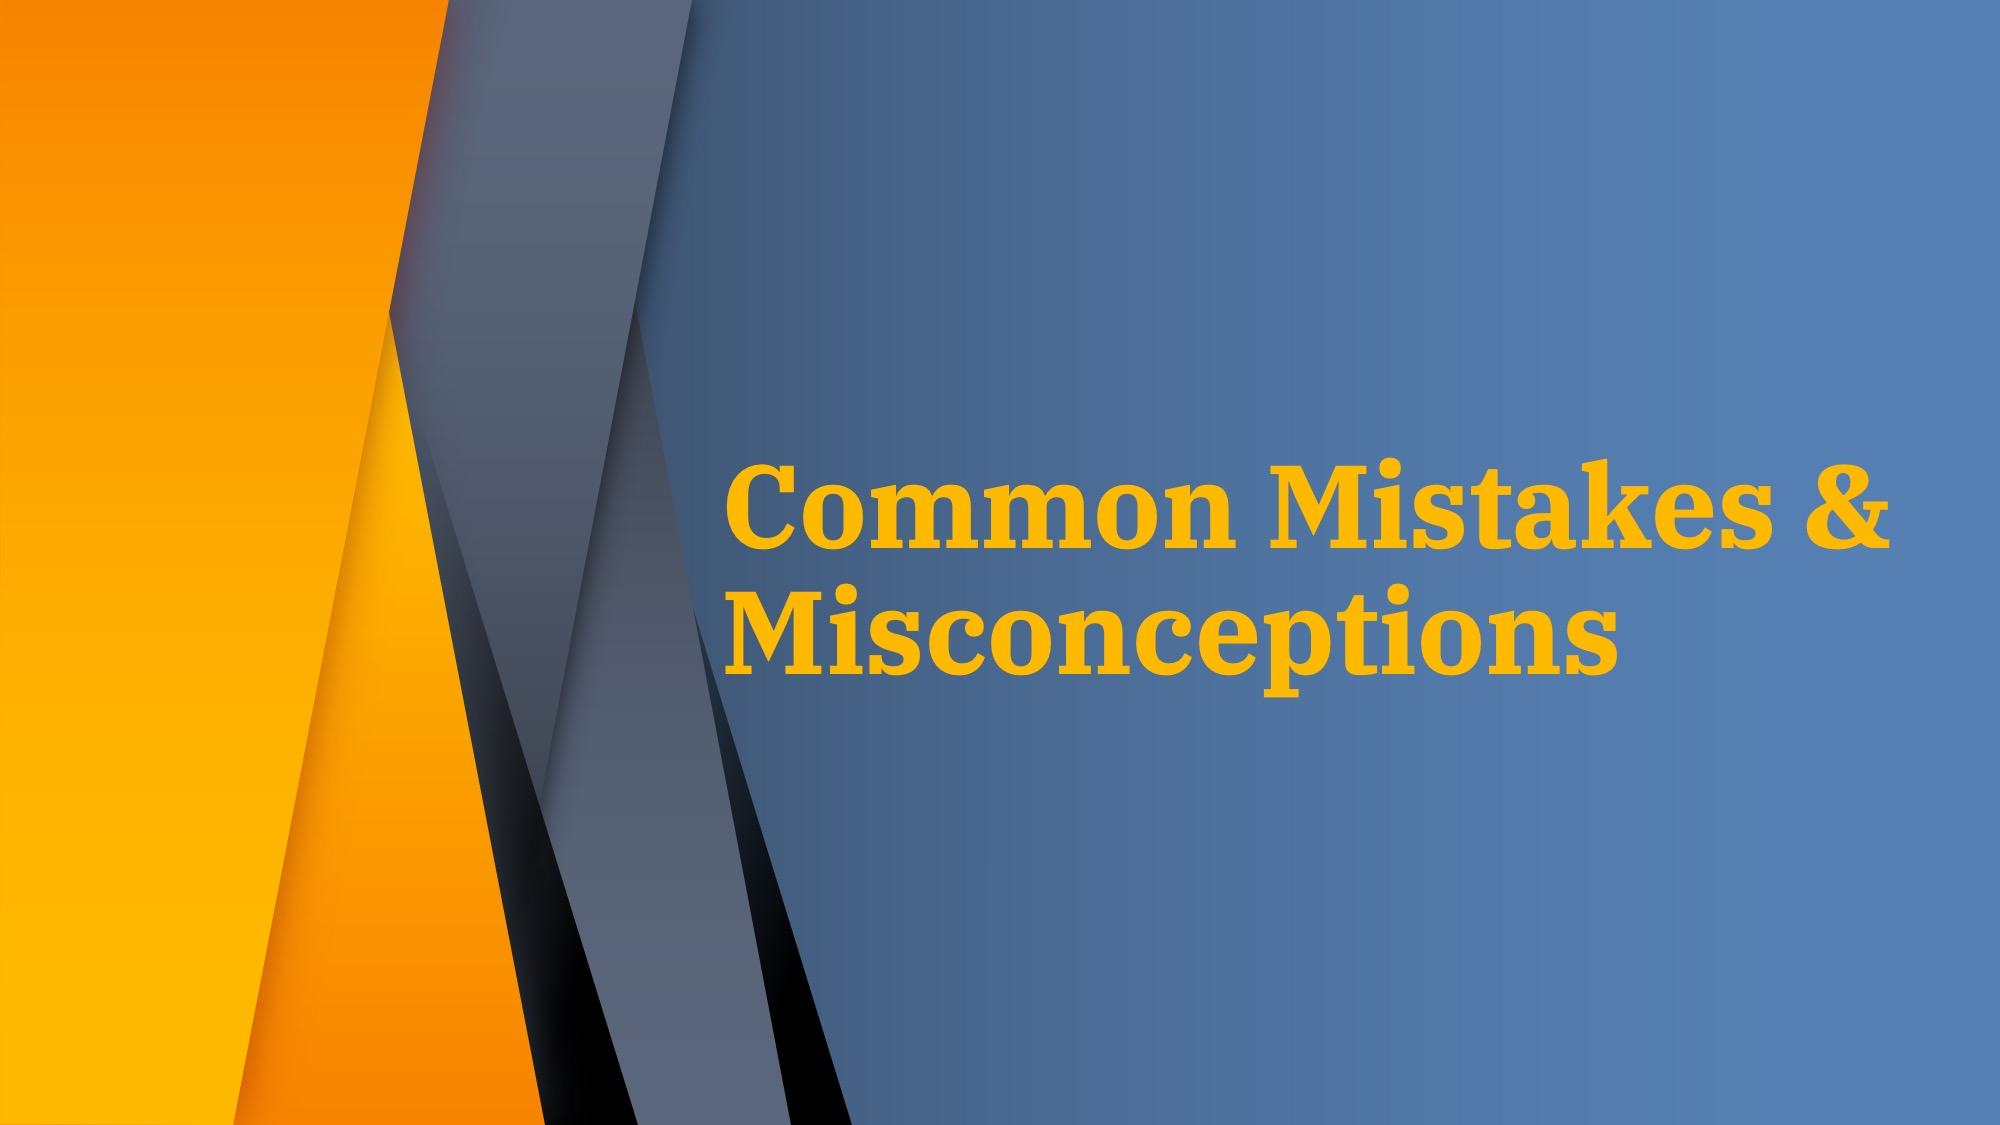 International expansion - common mistakes & misconceptions